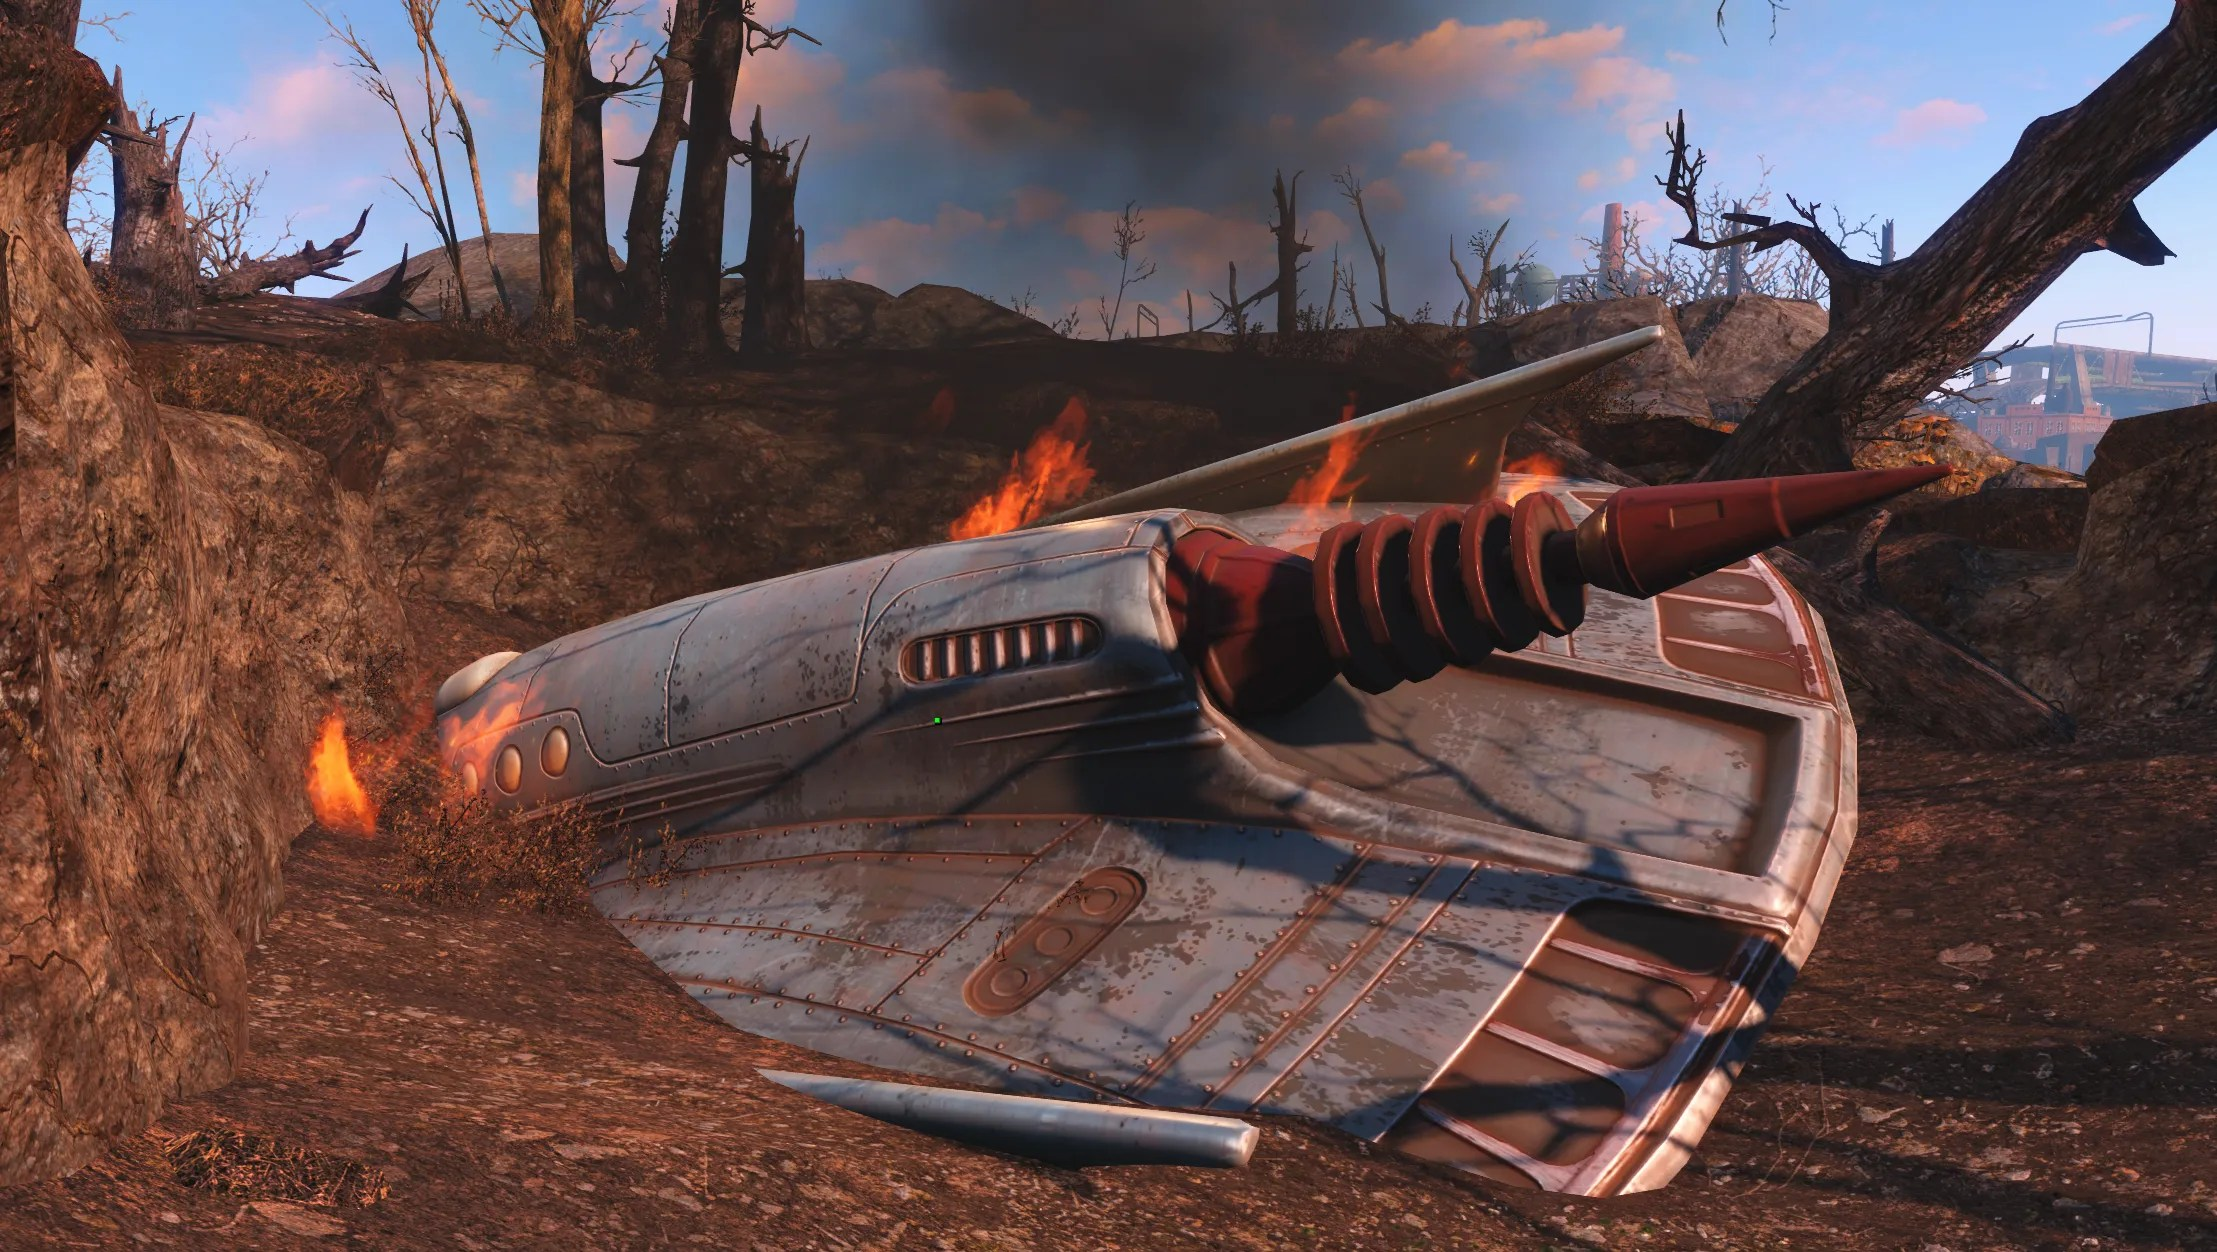 10 Cool Side Stories You Probably Missed In The Fallout Series